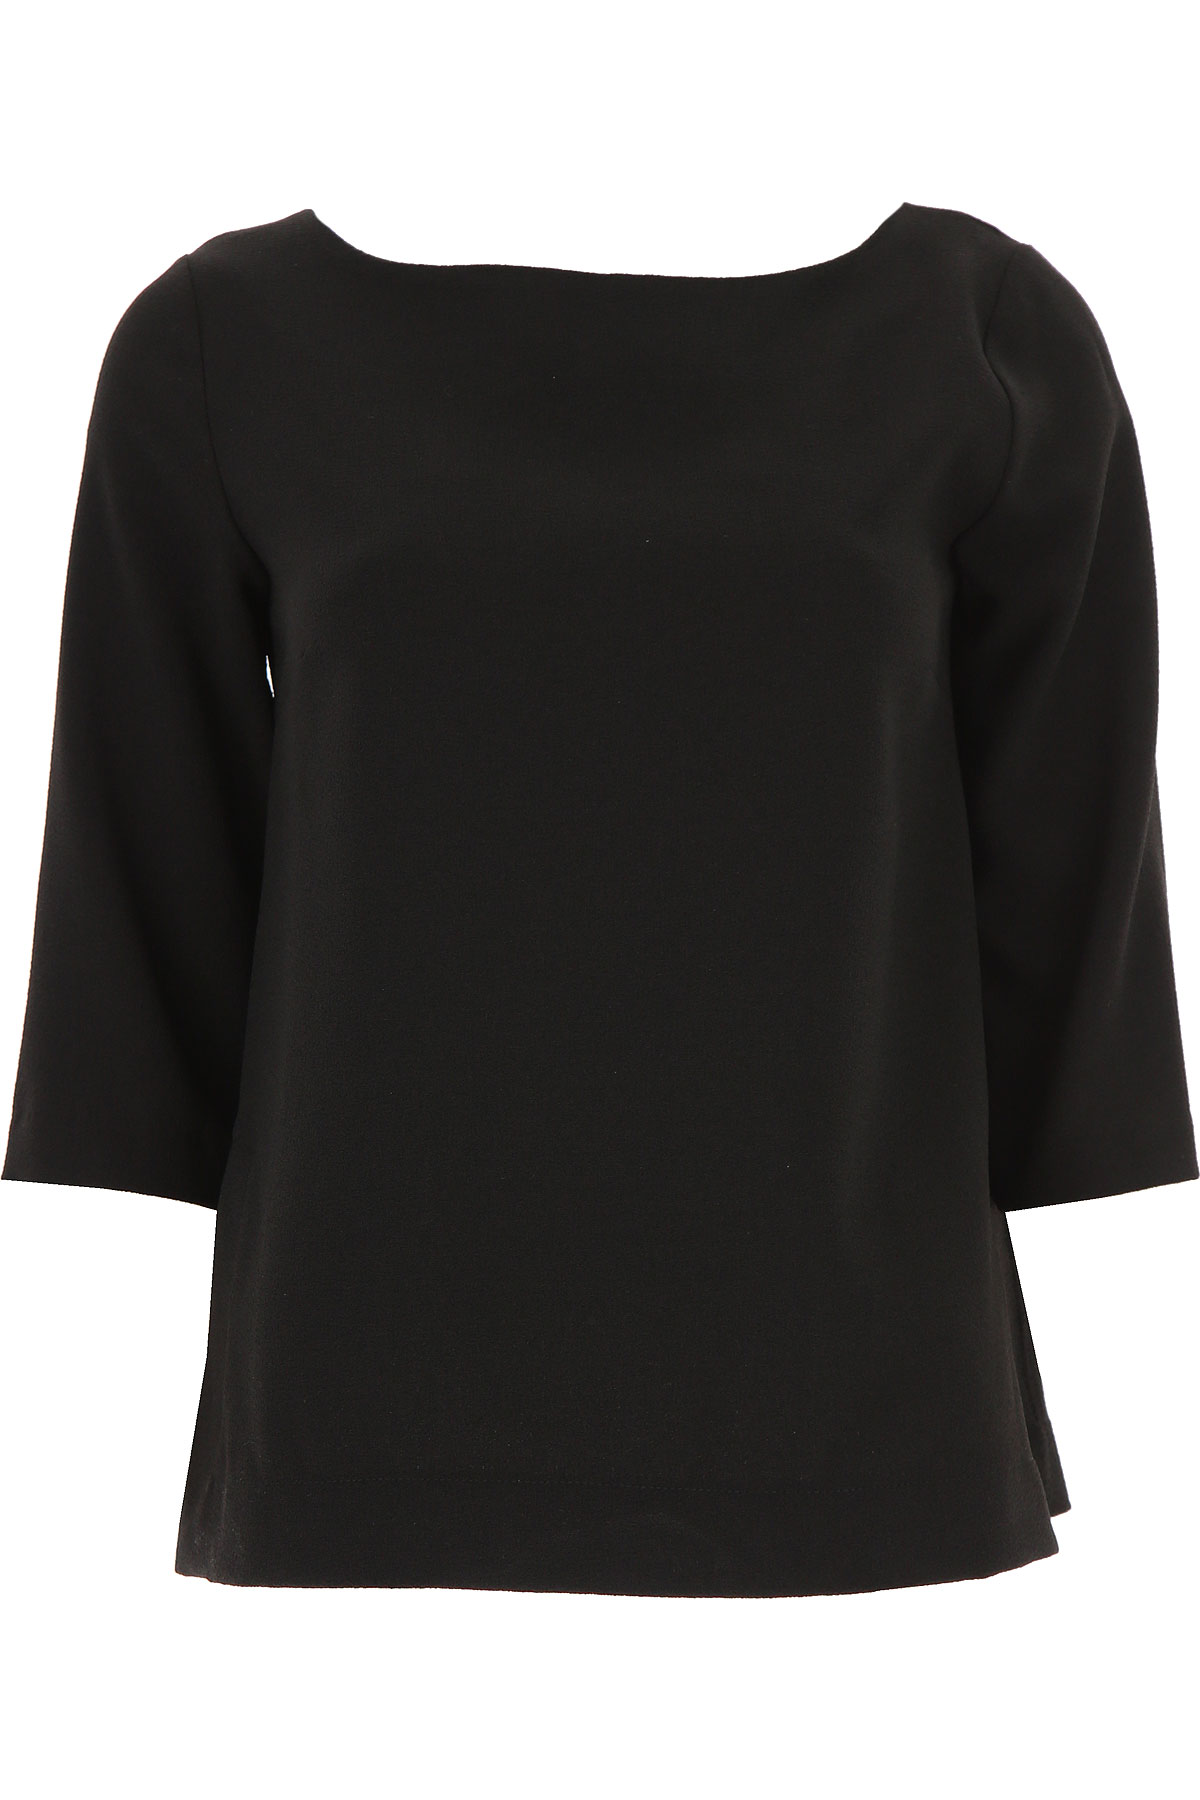 Image of Ottodame Top for Women On Sale, Black, polyester, 2017, US 4 - I 40 - GB 8 - F36 US 8 - I 44 - GB 12 - F 40 US 10 - I 46 - GB 14 - F 42